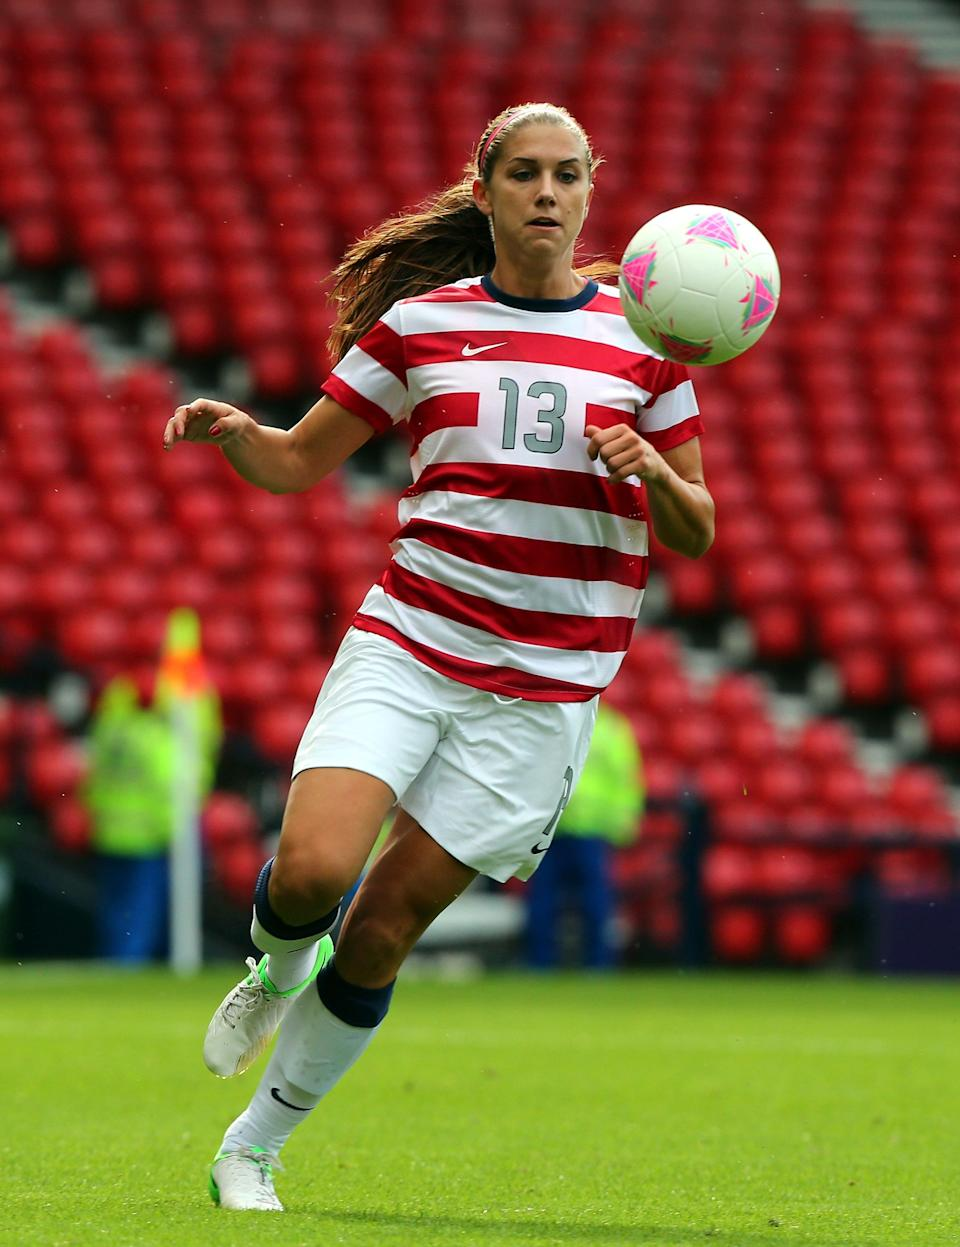 Alex Morgan of USA controls the ball during the Women's Football first round Group G match between United States and Colombia on Day 1 of the London 2012 Olympic Games at Hampden Park on July 28, 2012 in Glasgow, Scotland. (Photo by Stanley Chou/Getty Images)